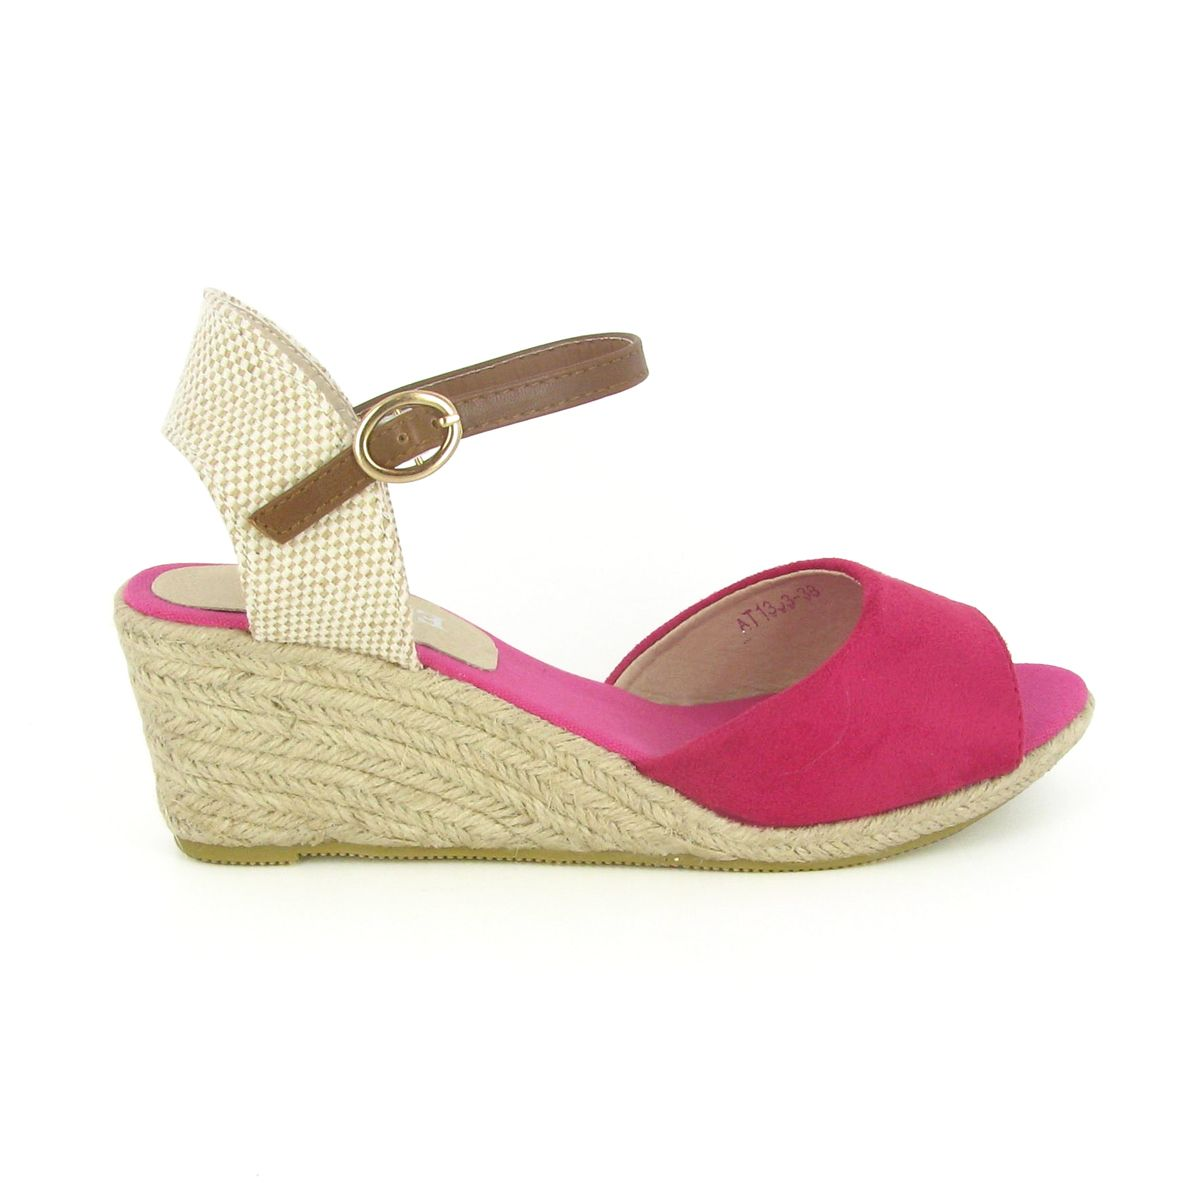 http://www.chaussures-eclipse.fr/chaussures-compensees-femme/1970-chaussures-femme-compensee-deborah-fushia.html